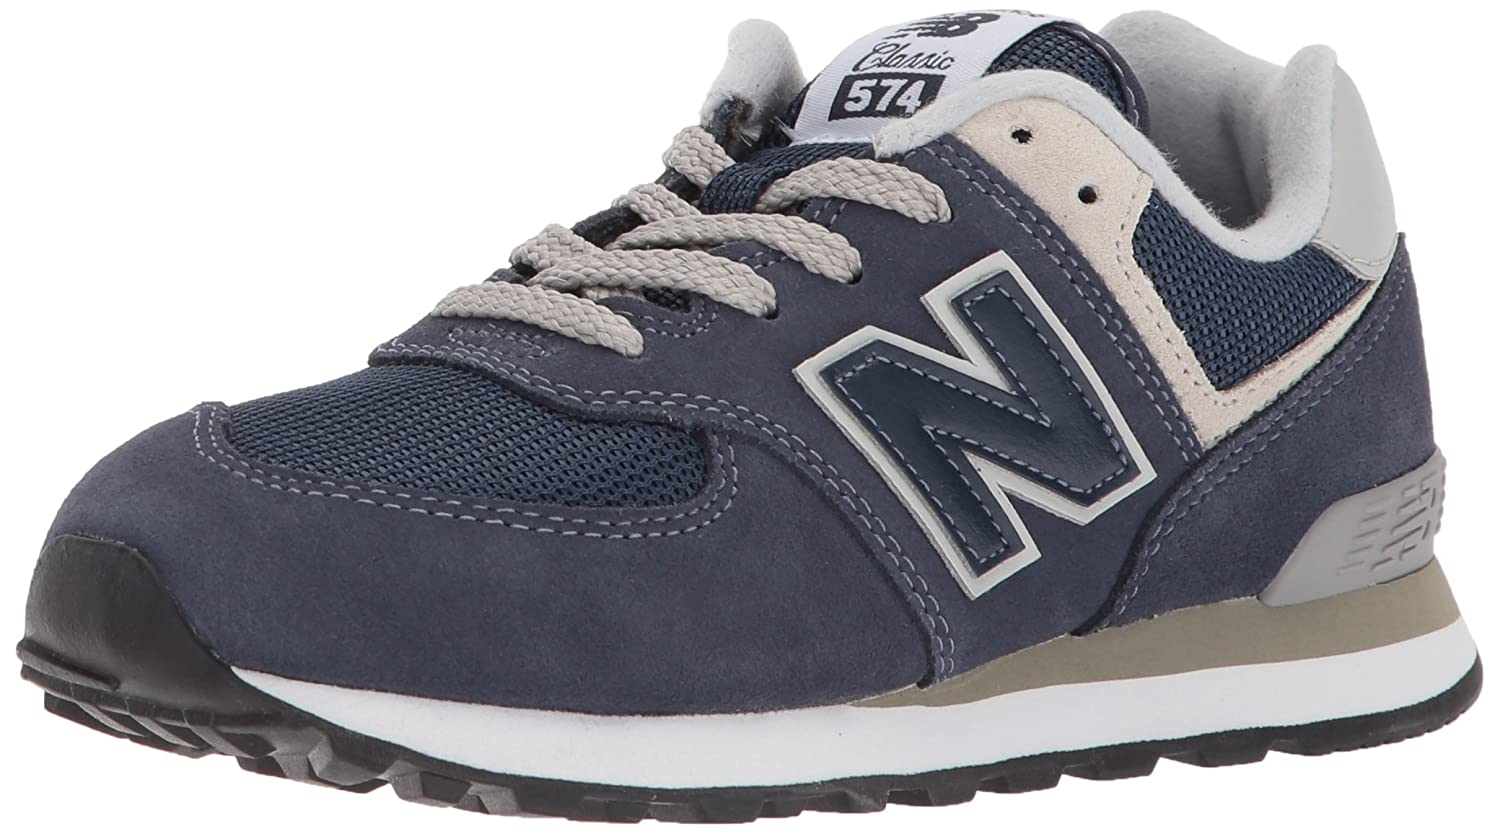 New Balance Pc574v1 Baskets Mixte Enfant